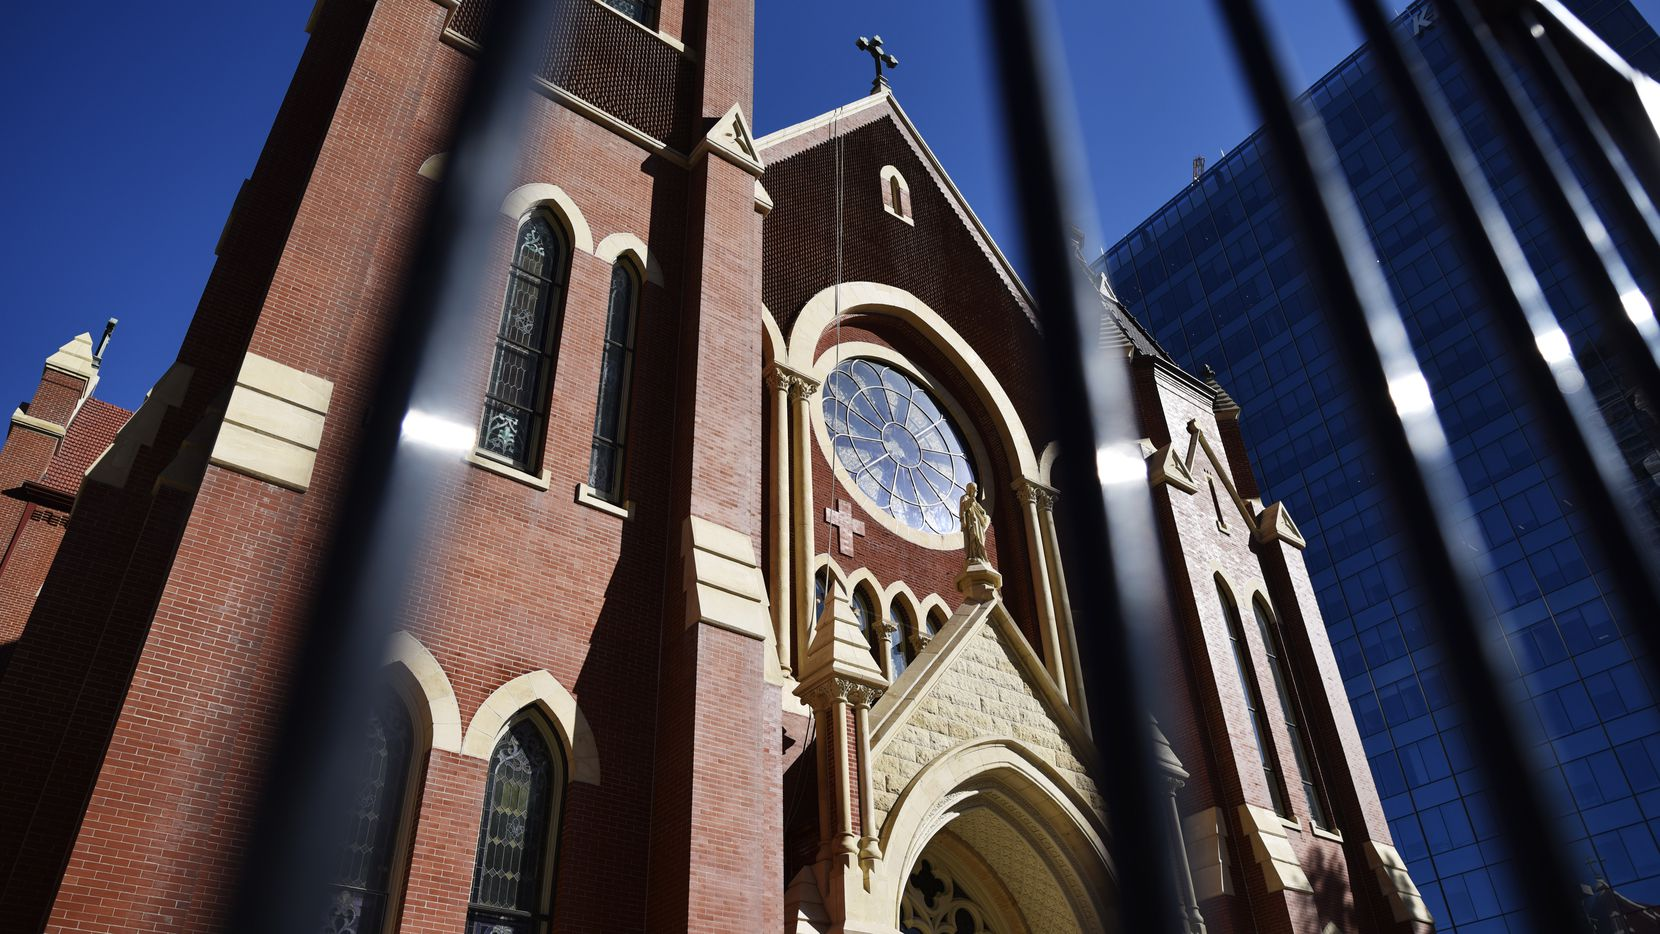 The Cathedral Shrine of the Virgin of Guadalupe (shown) and other parishes in the Diocese of Dallas are expected not to single out people who don't wear masks at Mass, the diocese said Tuesday, Aug. 10, 2021.